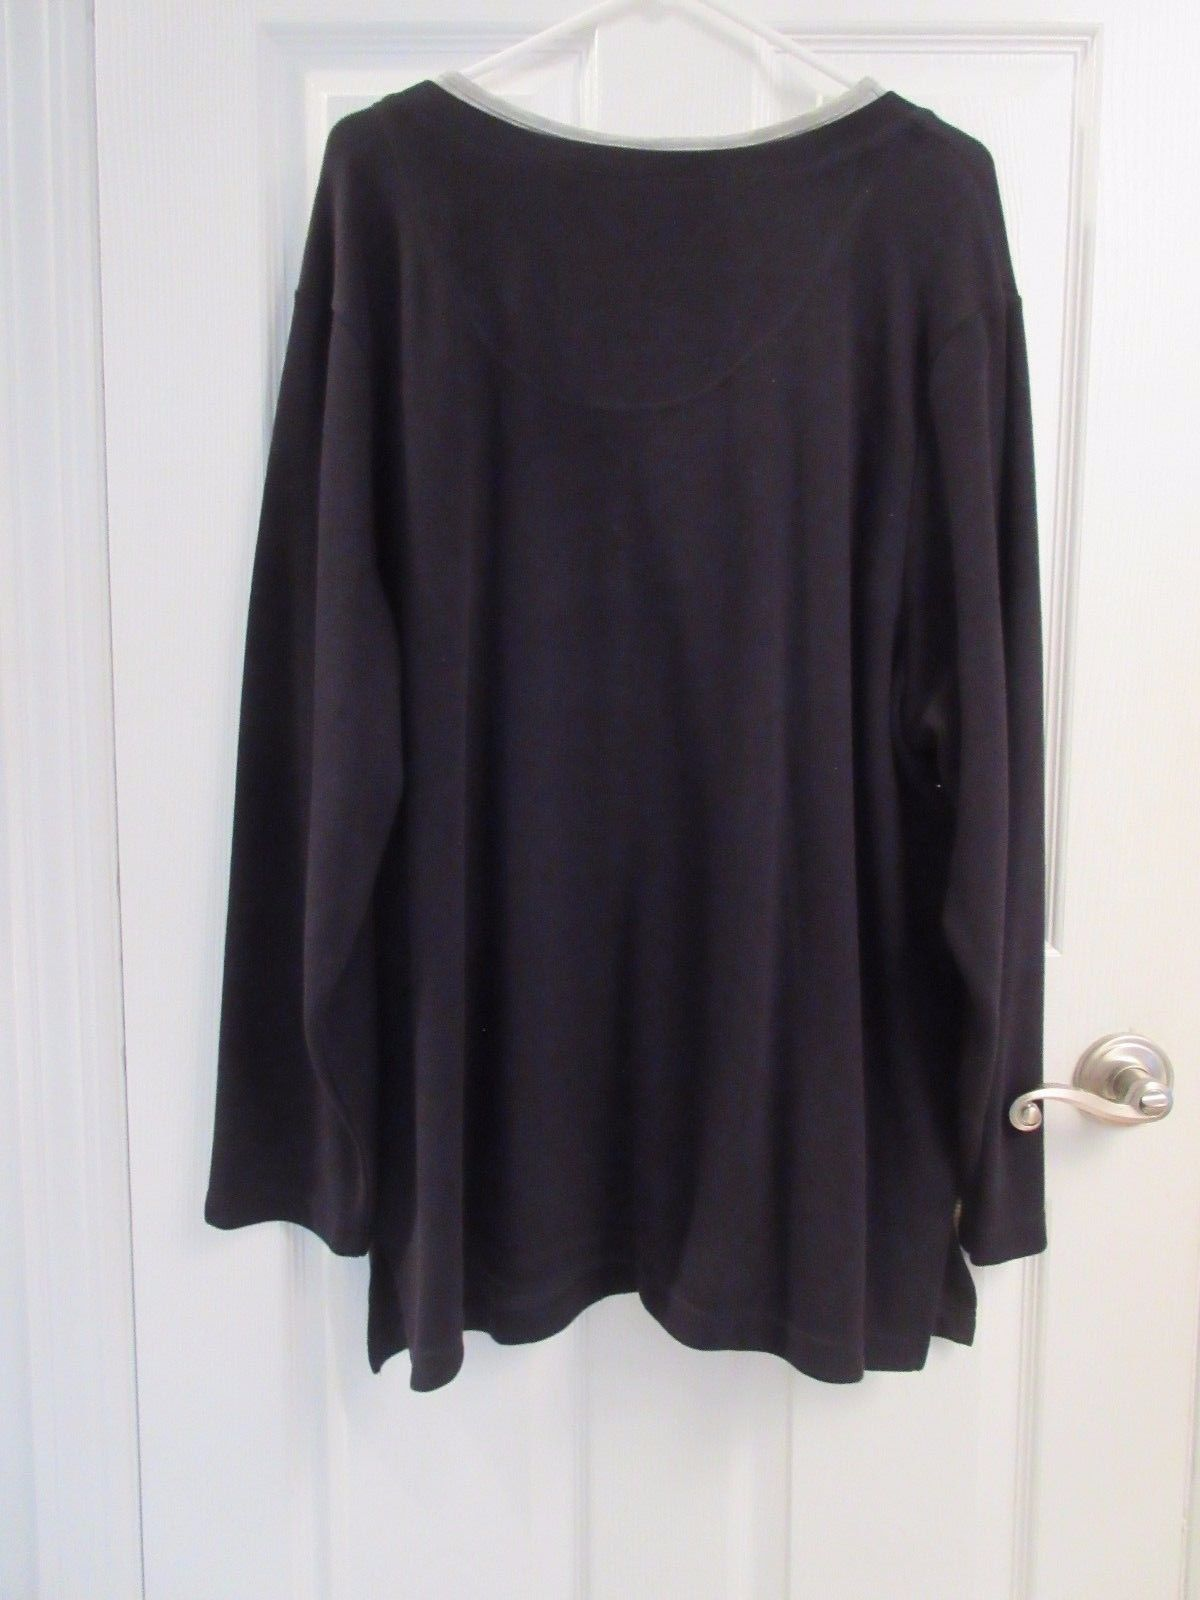 Women's Essentials by Maggie Grey & Black Pullover Top Size 26/28W - NWOT